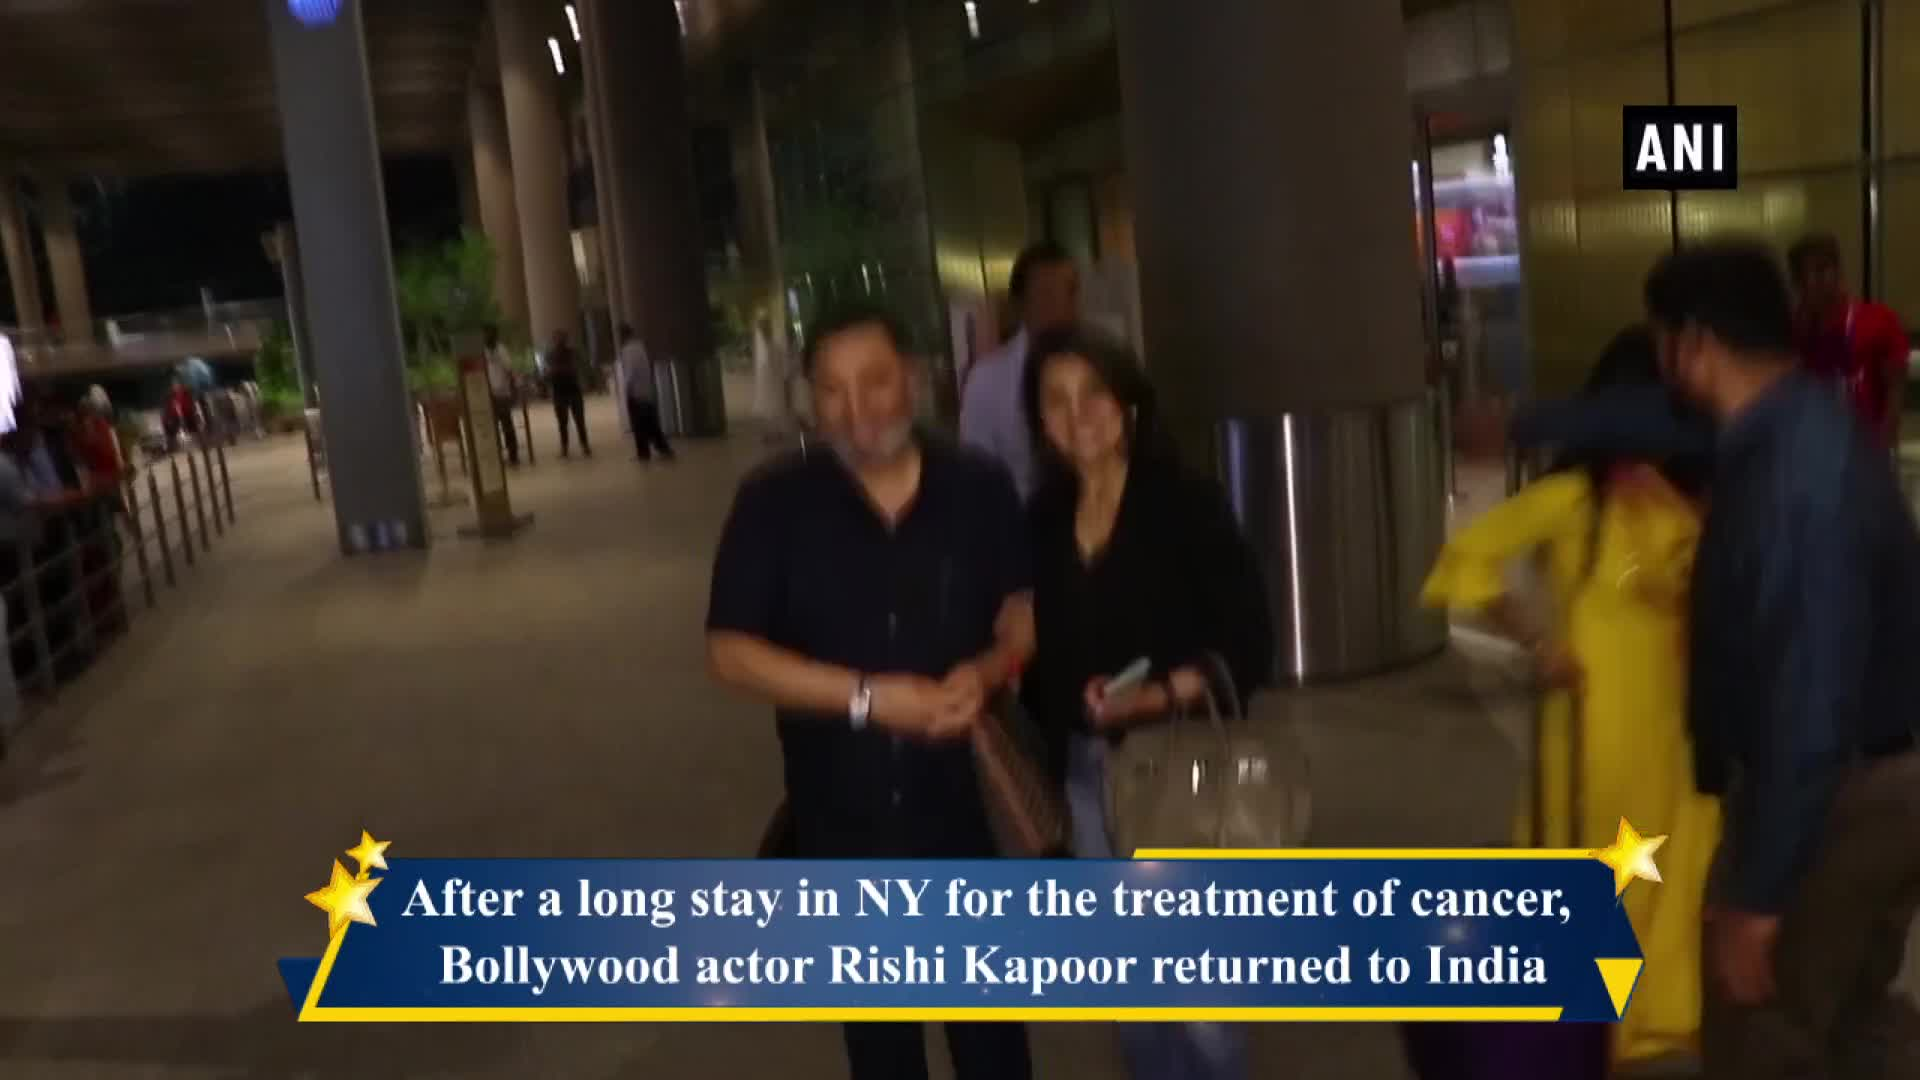 Rishi Kapoor returns to India after year of treatment in NY